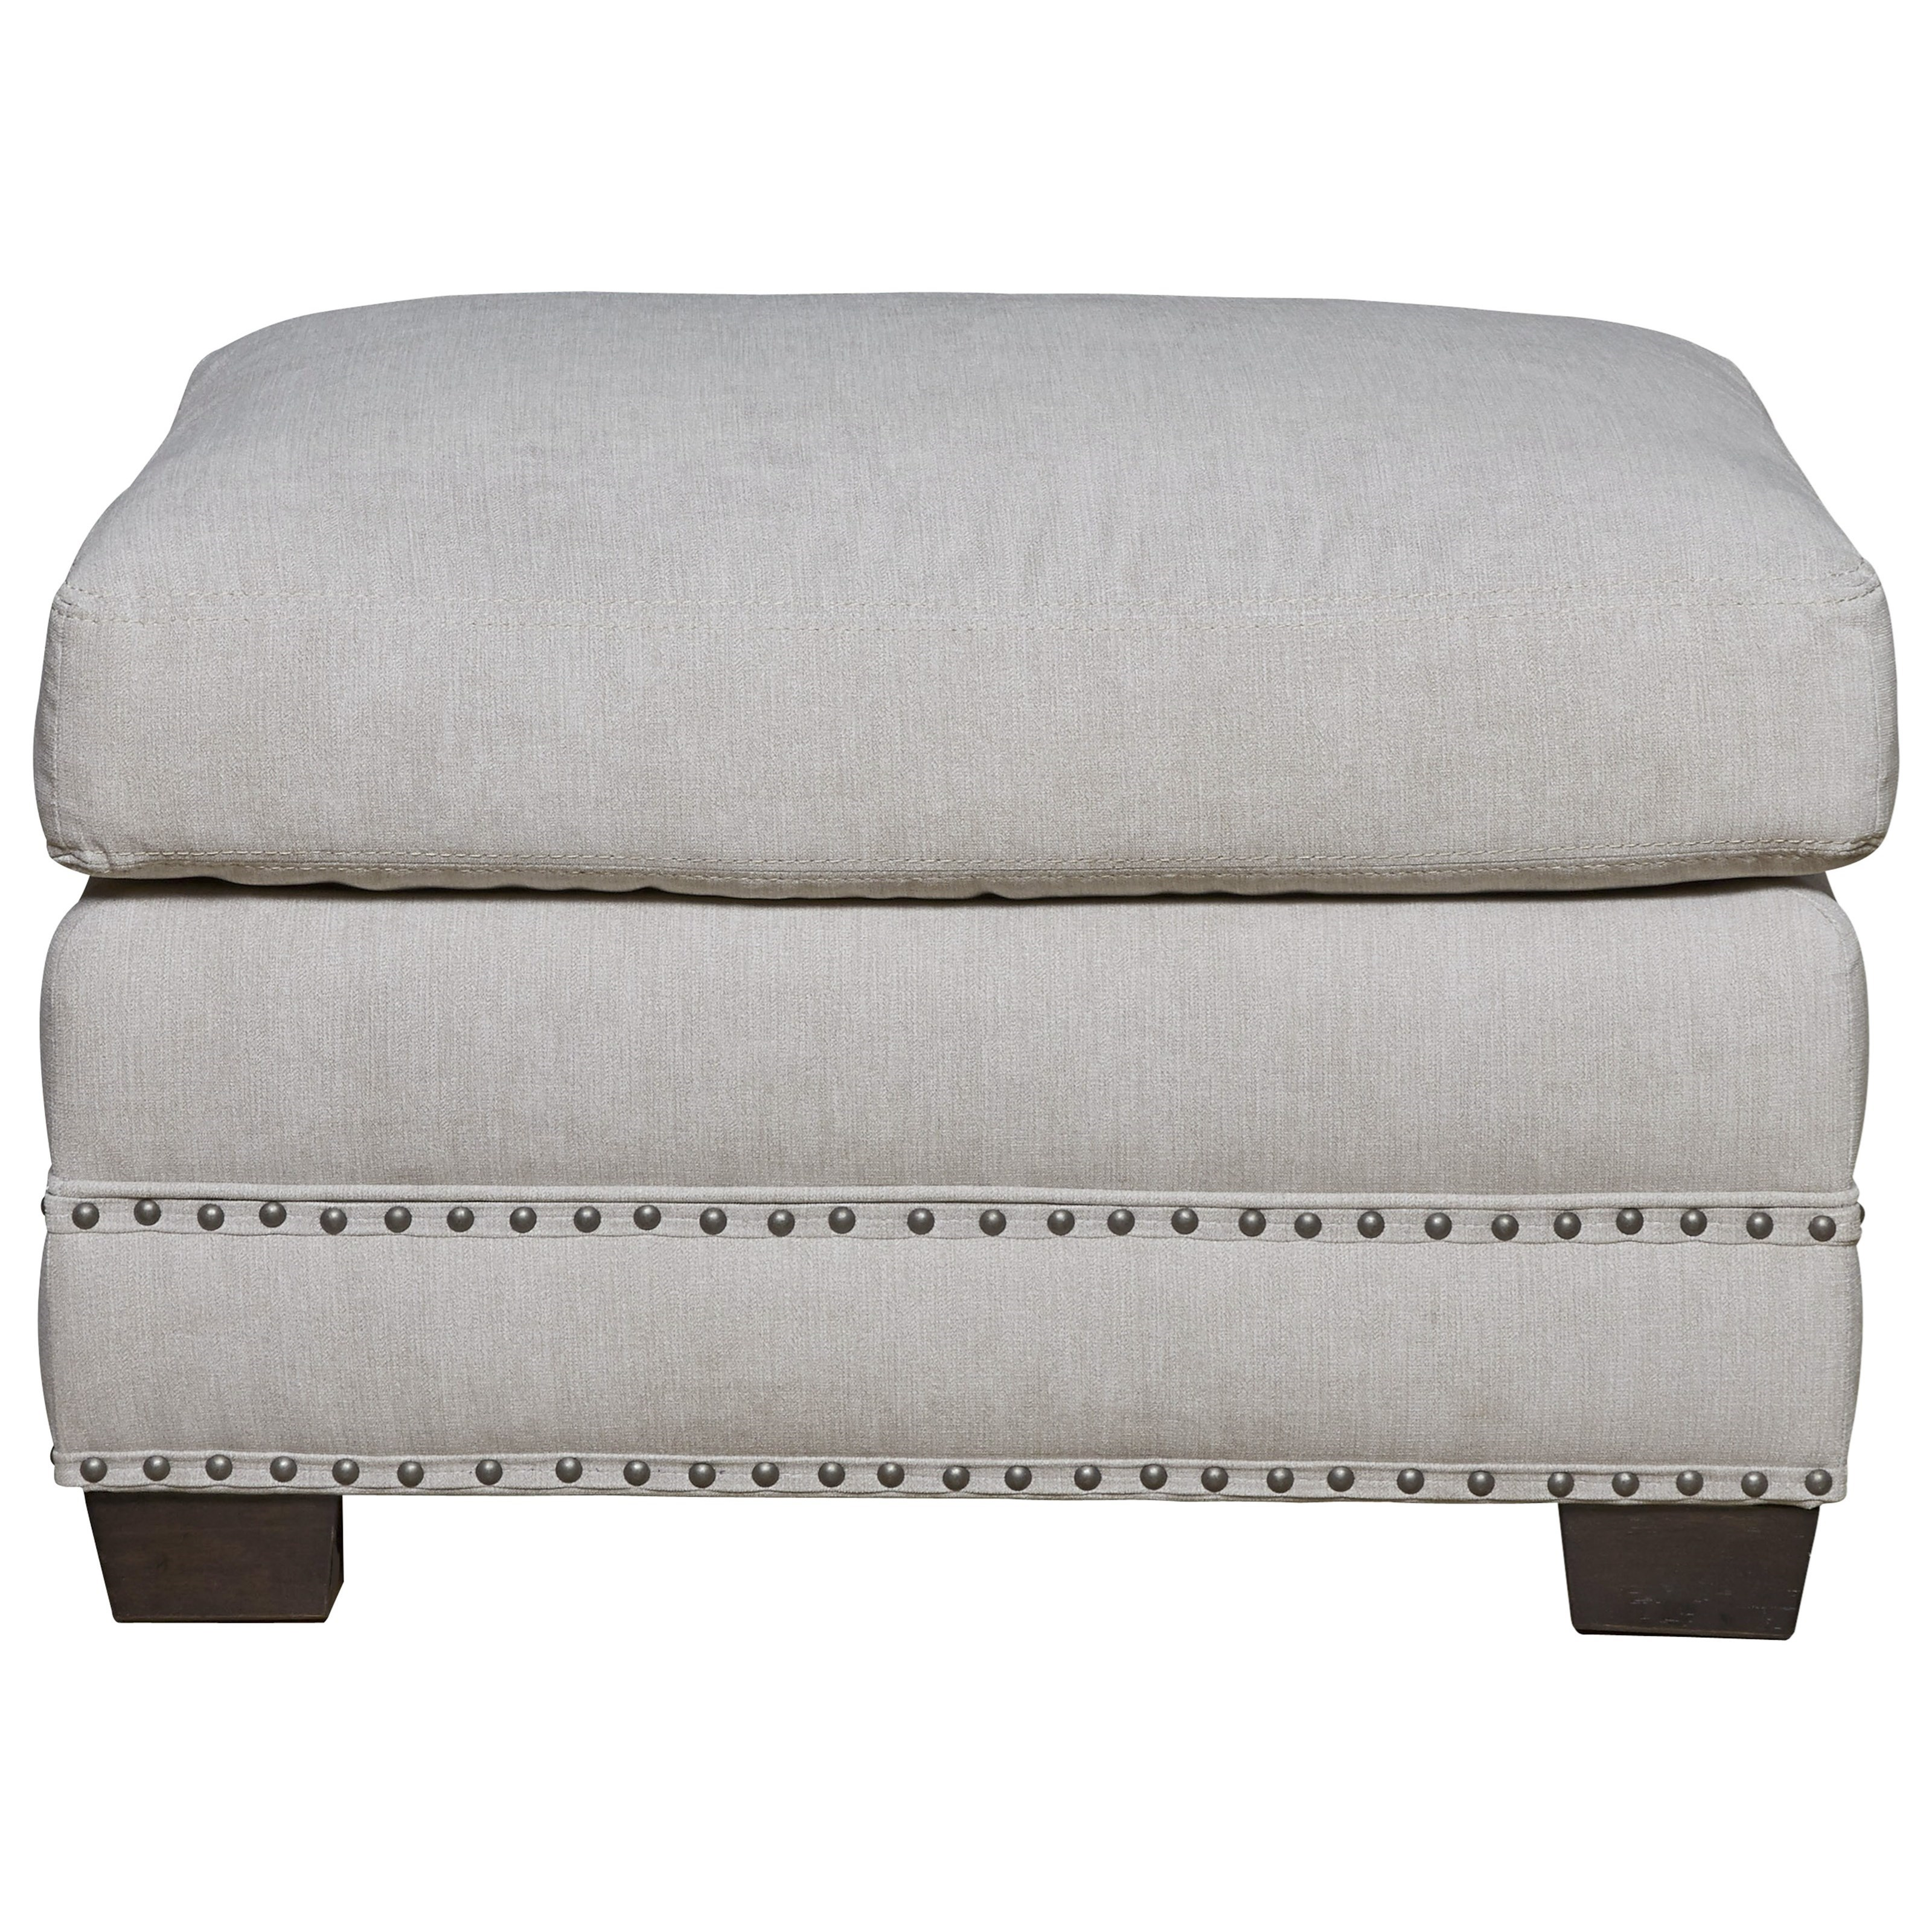 Franklin Street Ottoman by Universal at Zak's Home